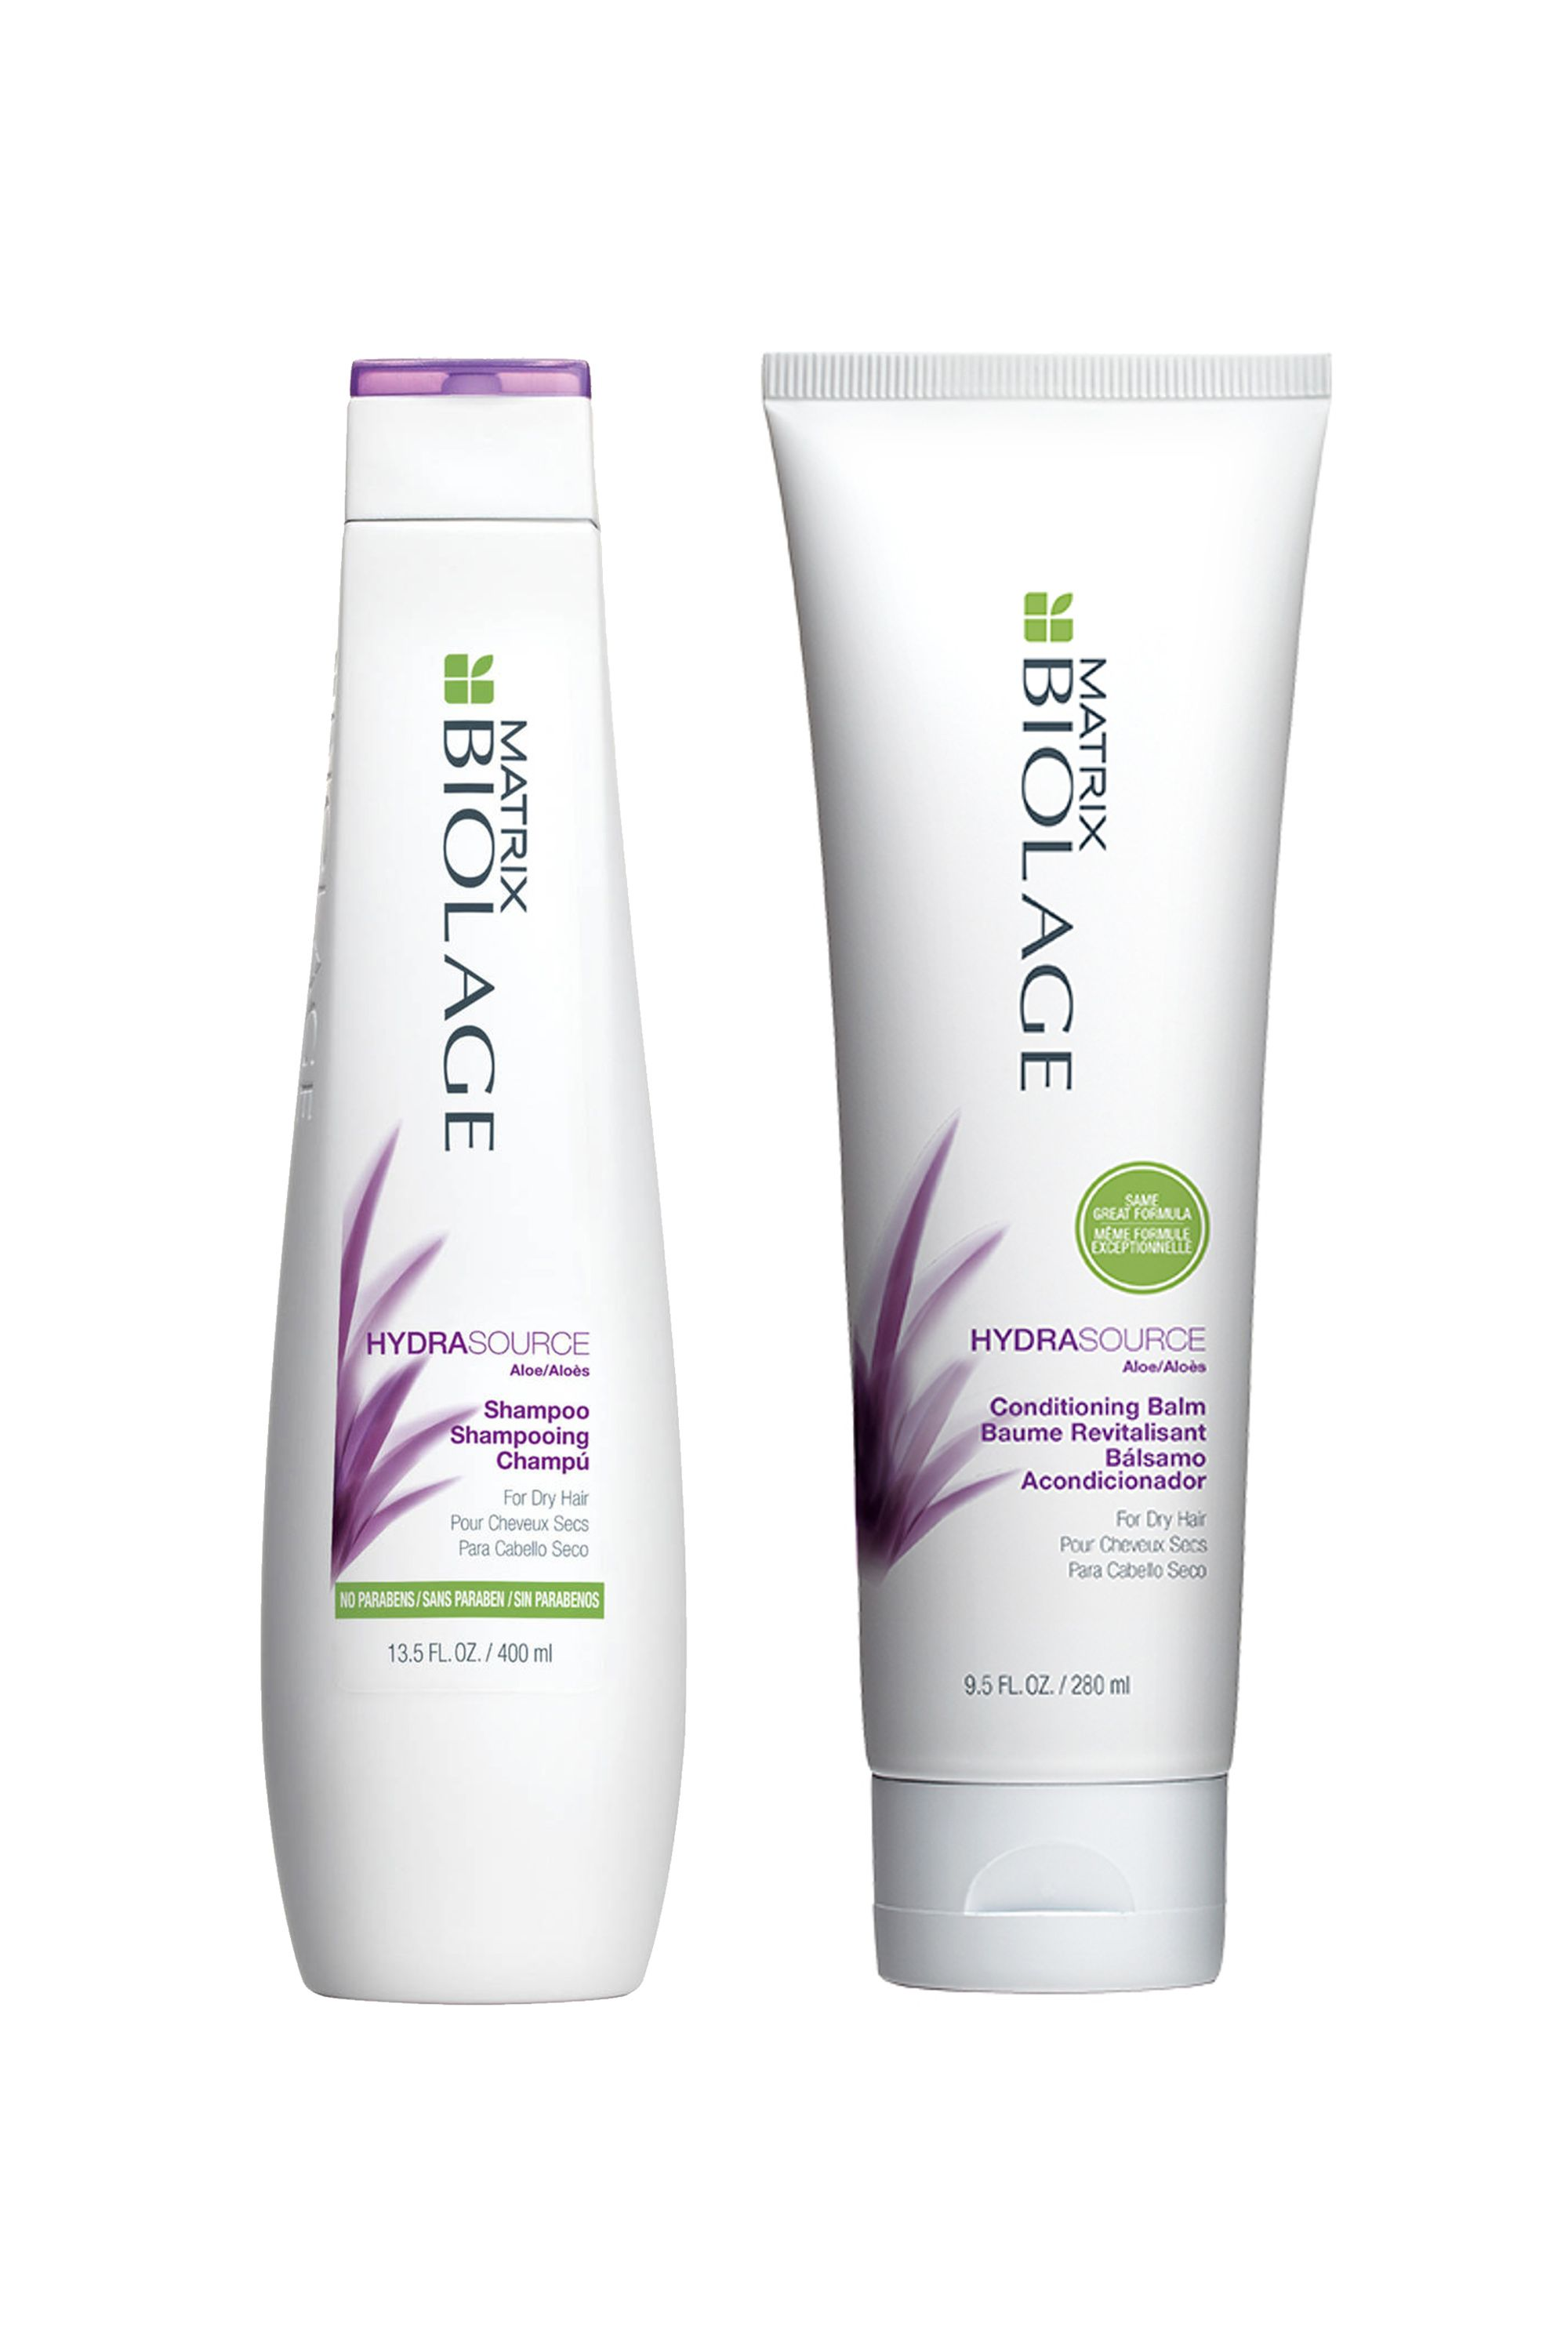 "<p>I don't have much to say other than my hair felt stronger and silkier ever since I started using Biolage. Honestly, I originally chose it because they were the fanciest looking products in CVS. I chose the hydrating formula because of my dry, brittle ends and frizz. It's been 4 years, and I've never looked back. My frizz is all but gone and one of my best friends told me he always sits next to me because my hair smells really good. Weird? Yes. But I'll take it.- Emily Tannenbaum</p><p><i data-redactor-tag=""i"">Matrix Biolage HydraSource Shampoo, $17; <a href=""http://www.matrix.com/biolage/hydrasource-shampoo"" target=""_blank"">matrix.com</a> </i></p><p><i data-redactor-tag=""i"">Matrix Biolage Hydrasource Conditioning Balm, $17; <i data-redactor-tag=""i""><a href=""http://www.matrix.com/biolage/hydrasource-conditioner"" target=""_blank"">matrix.com</a></i><a href=""http://www.matrix.com/biolage/hydrasource-conditioner"" target=""_blank""></a><a href=""http://www.ulta.com/biolage-hydrasource-conditioning-balm?productId=xlsImpprod12991105&sku=2290682&cmpid=PS_Non!google!Product_Listing_Ads&cagpspn=pla&CATCI=pla-195674944590&CAAGID=31031361737&CAWELAID=330000200000347094&catargetid=330000200000806432&cadevice=c&gclid=CJHrpK3hss8CFZGBaQodhQkOAg"" target=""_blank""></a></i></p>"